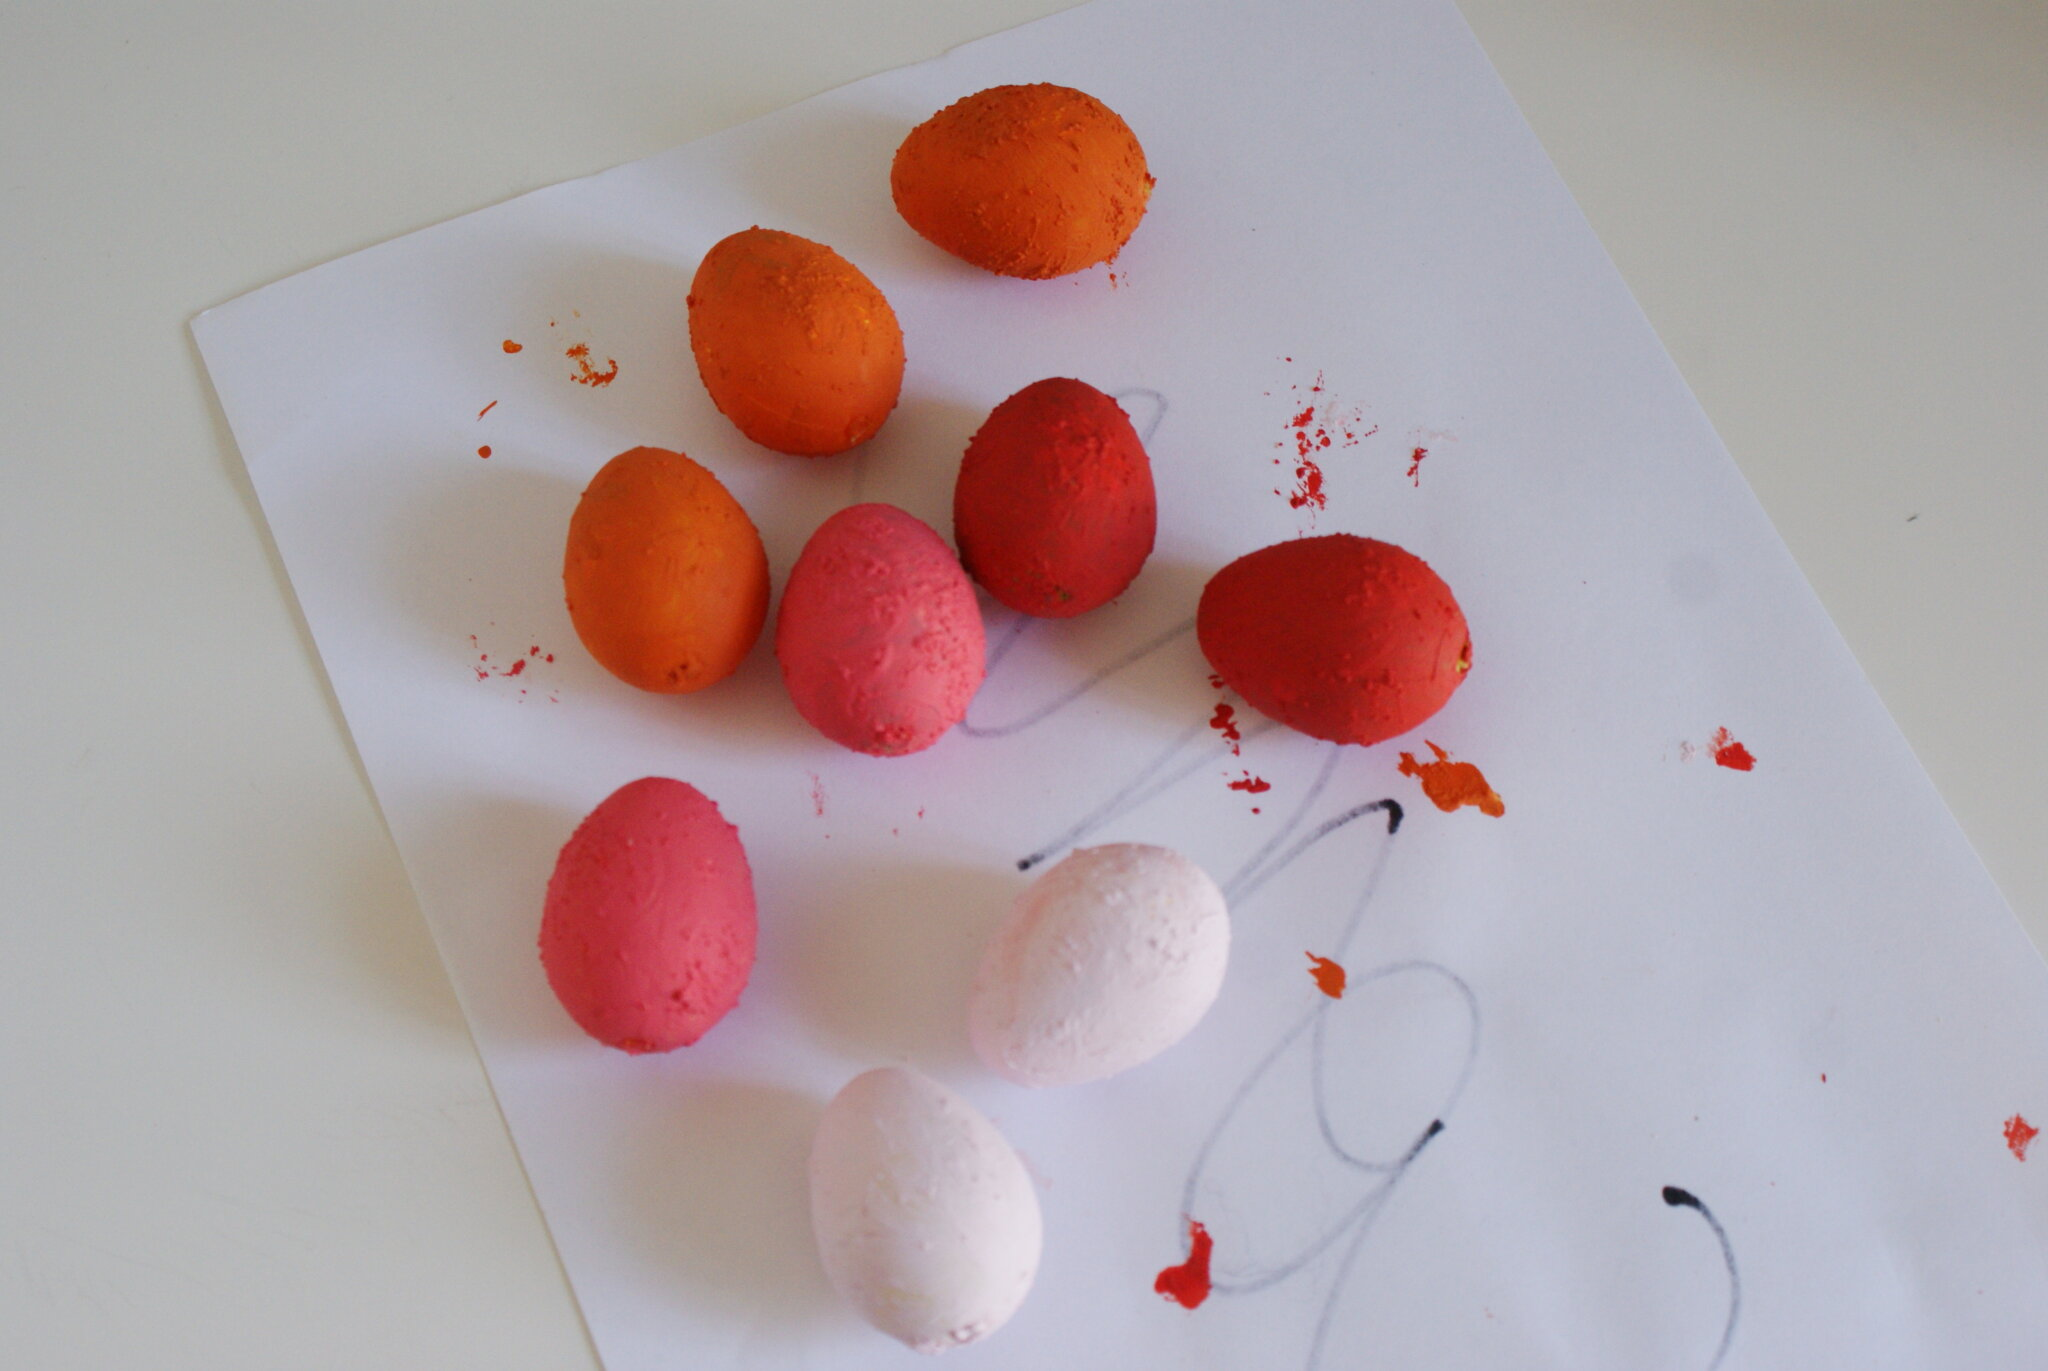 diy terracotta easter eggs decoration homemade paint craft ideas last minute easy simple